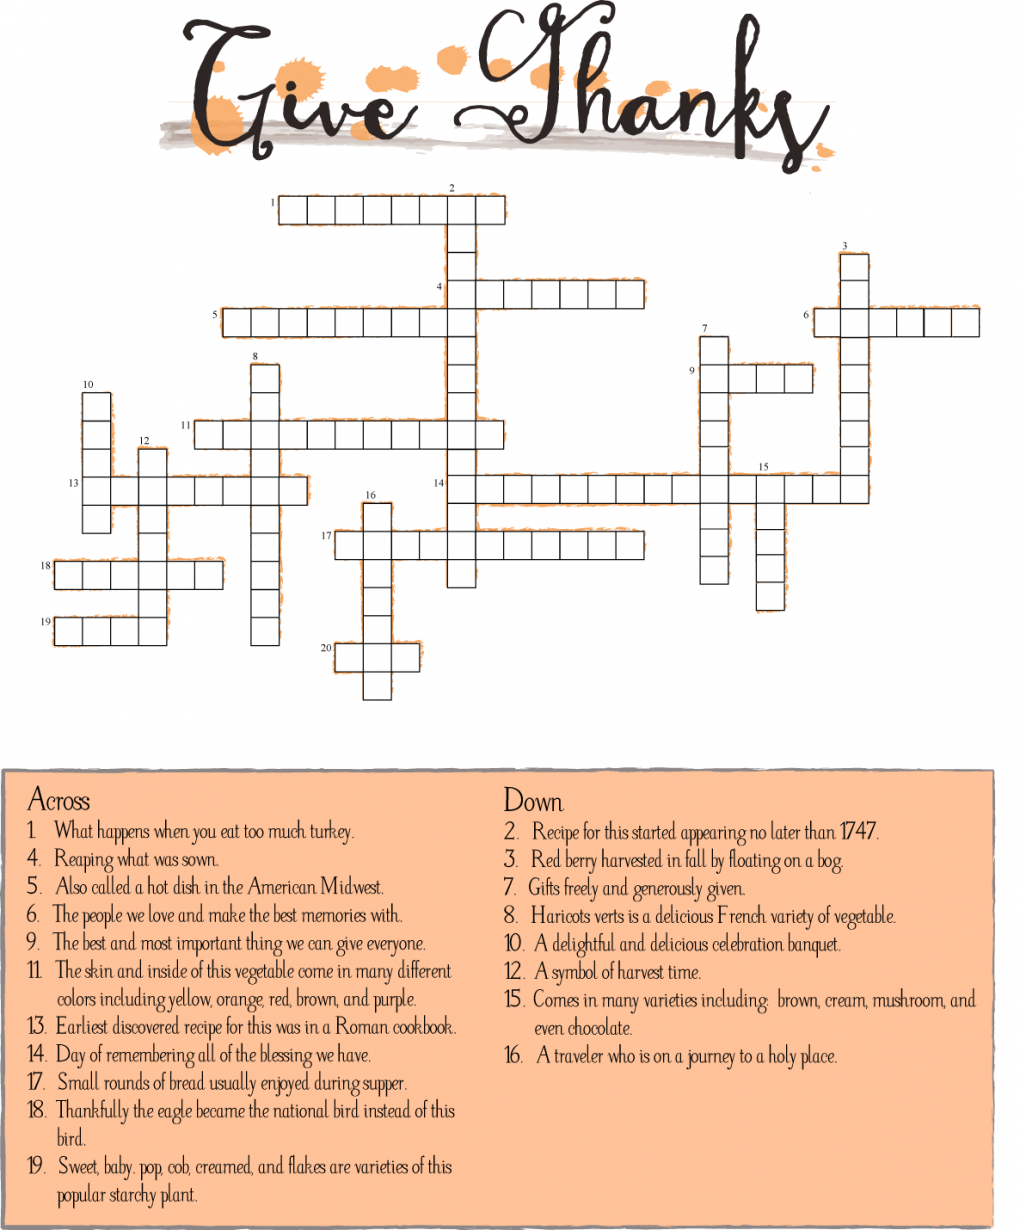 10 Superfun Thanksgiving Crossword Puzzles | Kittybabylove - Printable Thanksgiving Crossword Puzzles